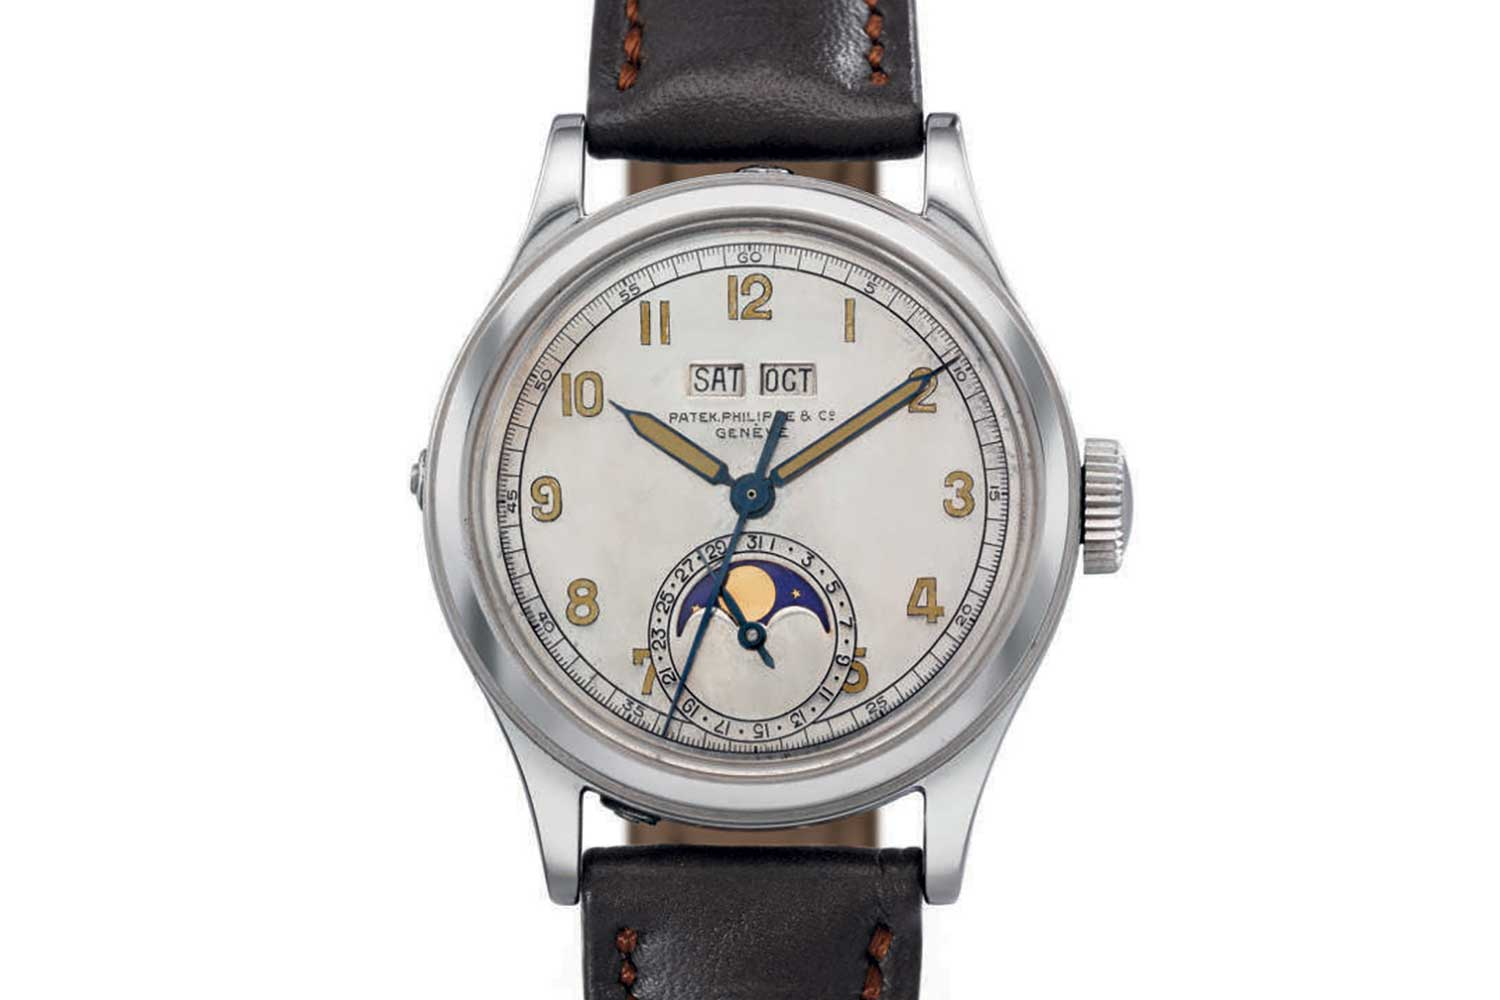 Ref. 1591 in stainless steel, Christie's 2007 auction